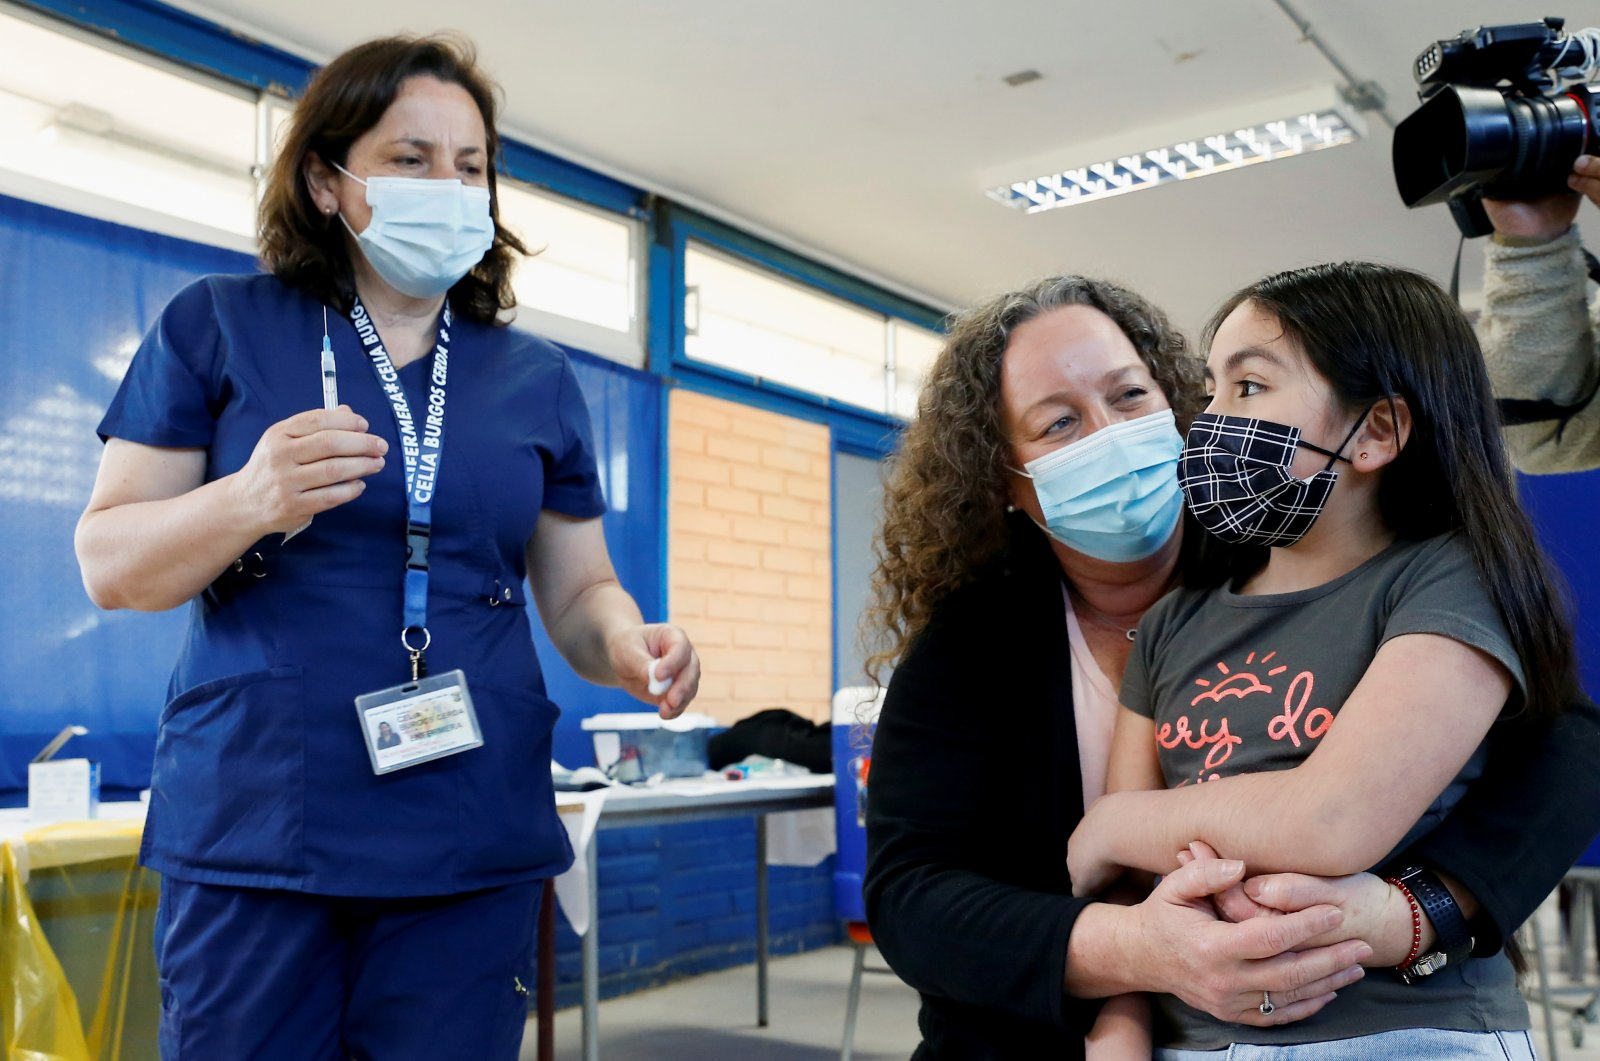 A girl prepares to receive a dose of the Sinovac vaccine against the coronavirus disease (COVID-19) at a public school in Concon, Chile  Sep. 27, 2021. (Reuters Photo)